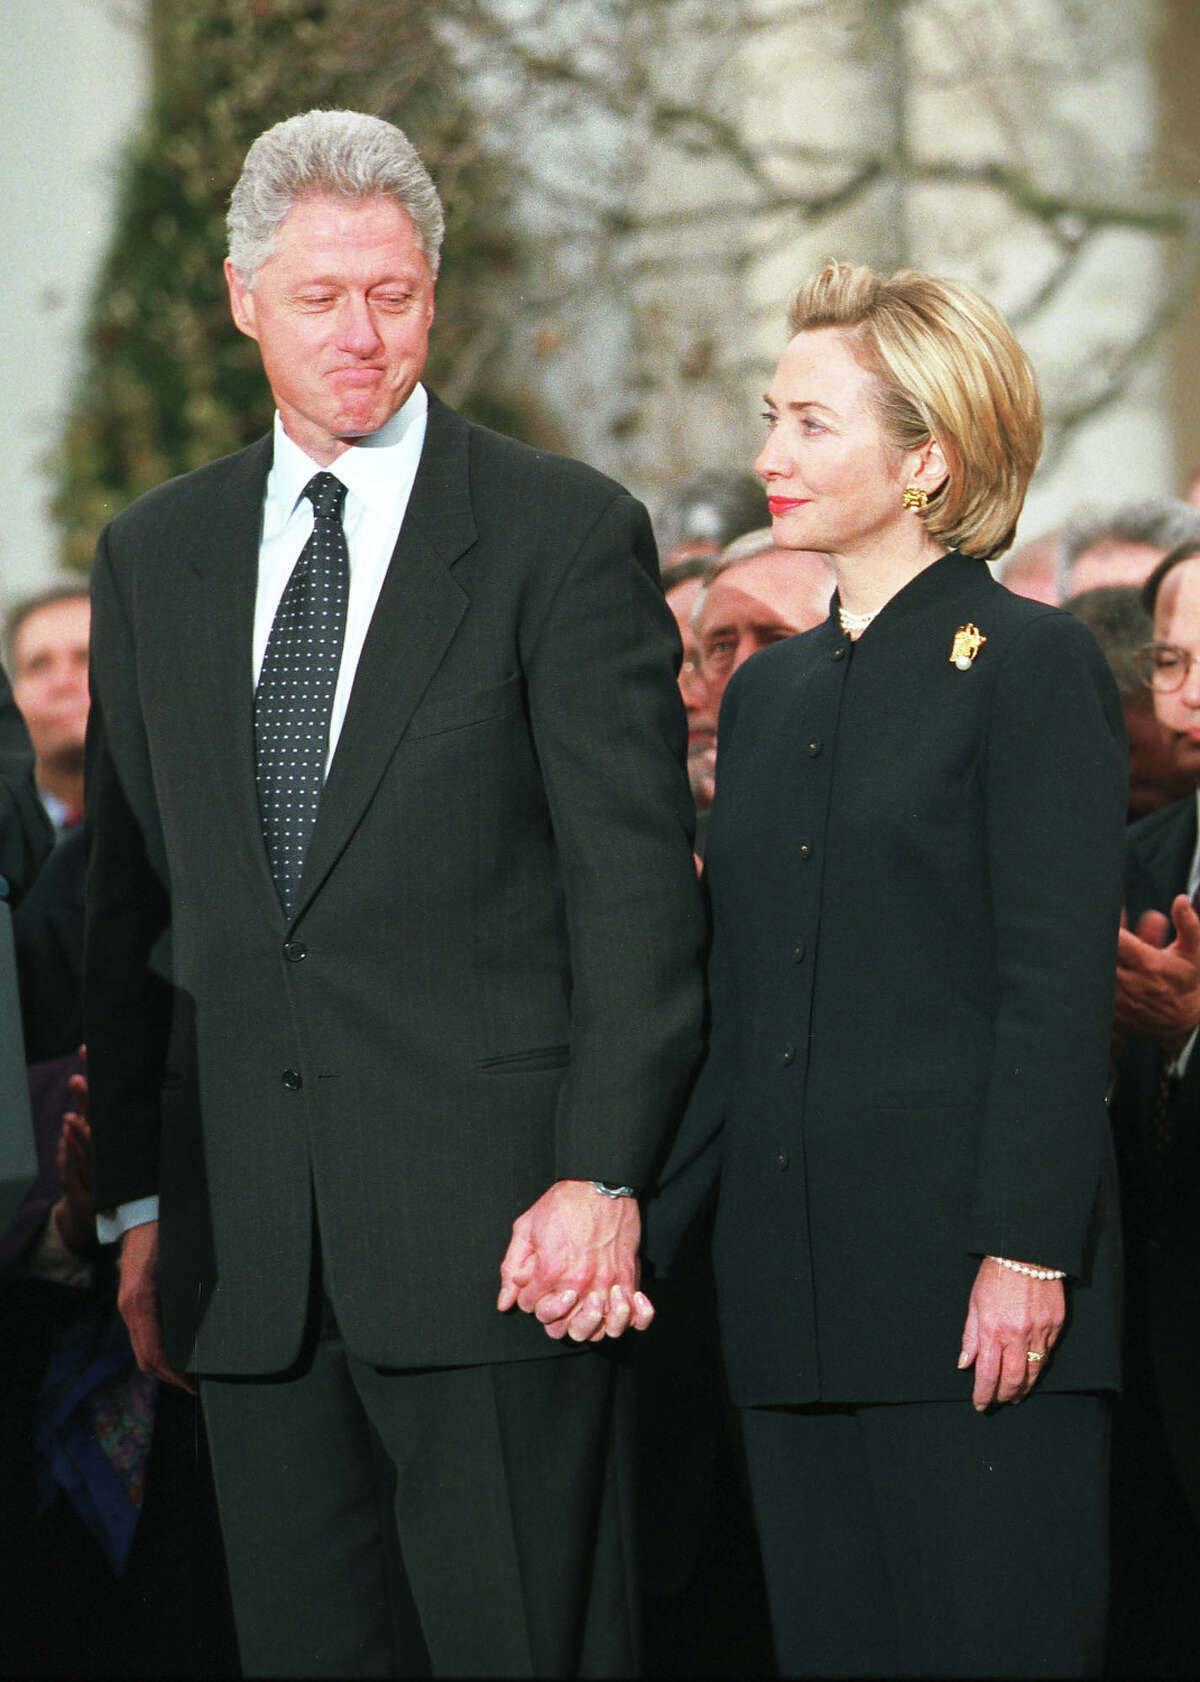 Tuesday, January 7, 2018 was the 19th anniversary of the start of the impeachment proceedings against President Bill Clinton. Here's a look back at the craziness: President Bill Clinton looks toward wife Hillary before addressing the American people following a vote for his impeachment December 19, 1998 at the White House. Clinton ignored calls for his resignation in the face of impeachment, vowing to remain in office